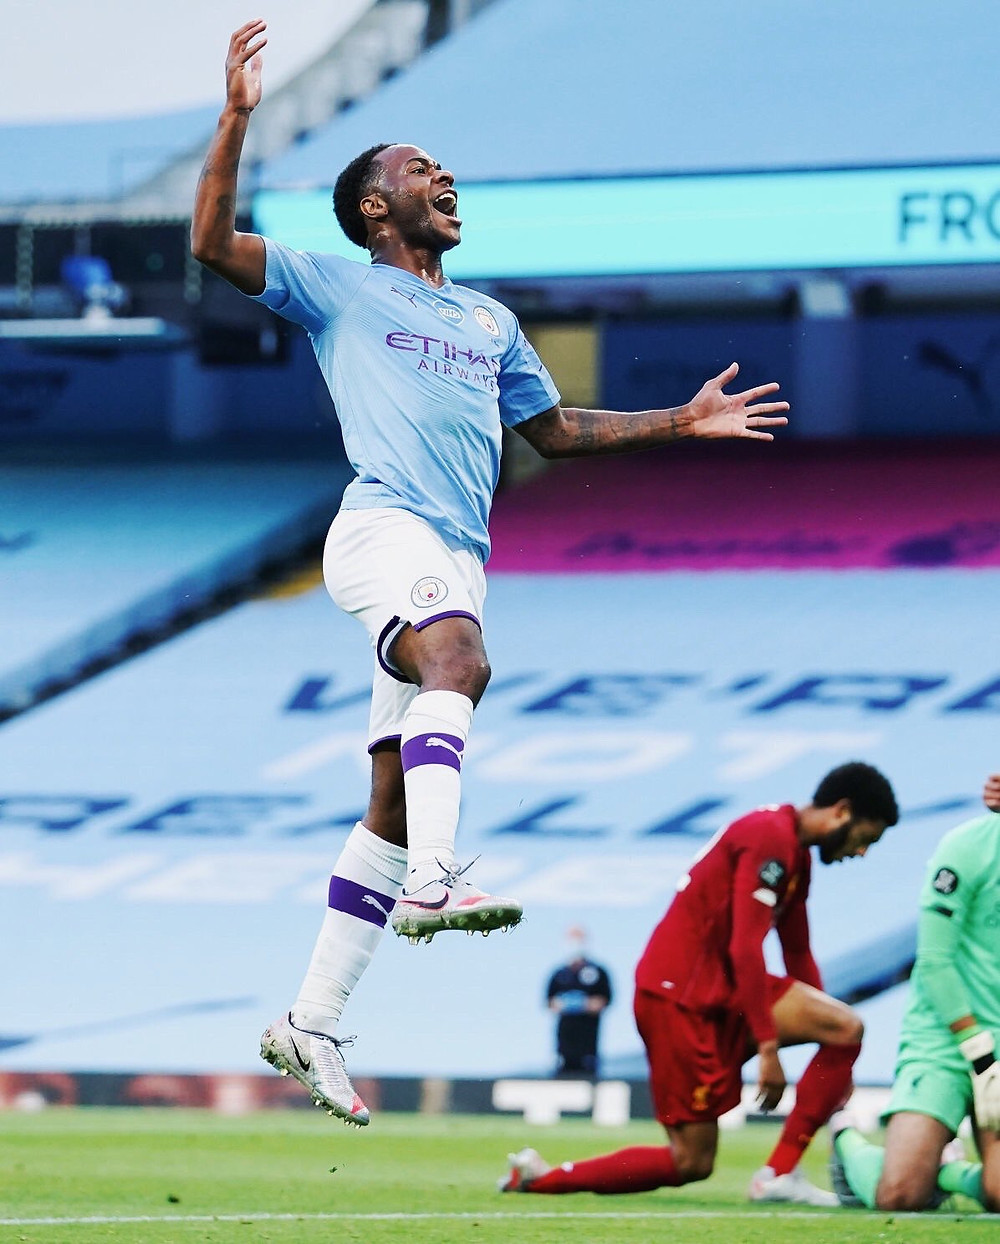 Mannchester City's Raheem Sterling celebrates after scoring past arch rival Joe Gomez